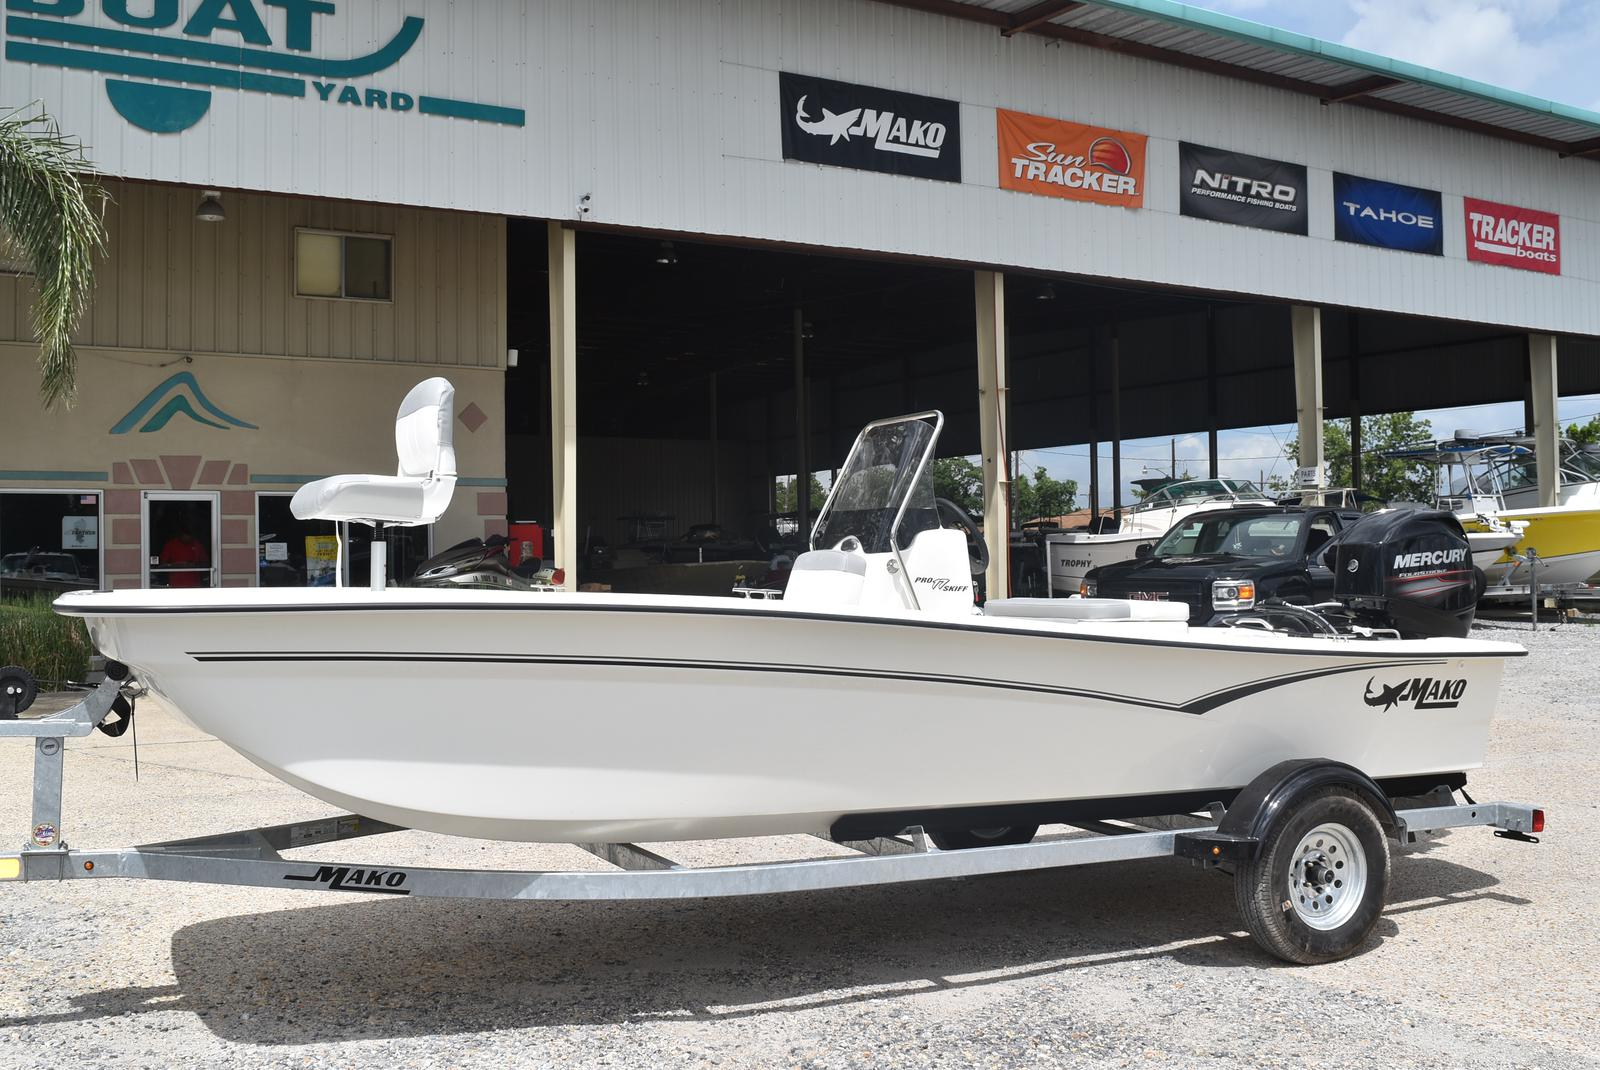 2020 Mako boat for sale, model of the boat is Pro Skiff 17, 75 ELPT & Image # 106 of 702